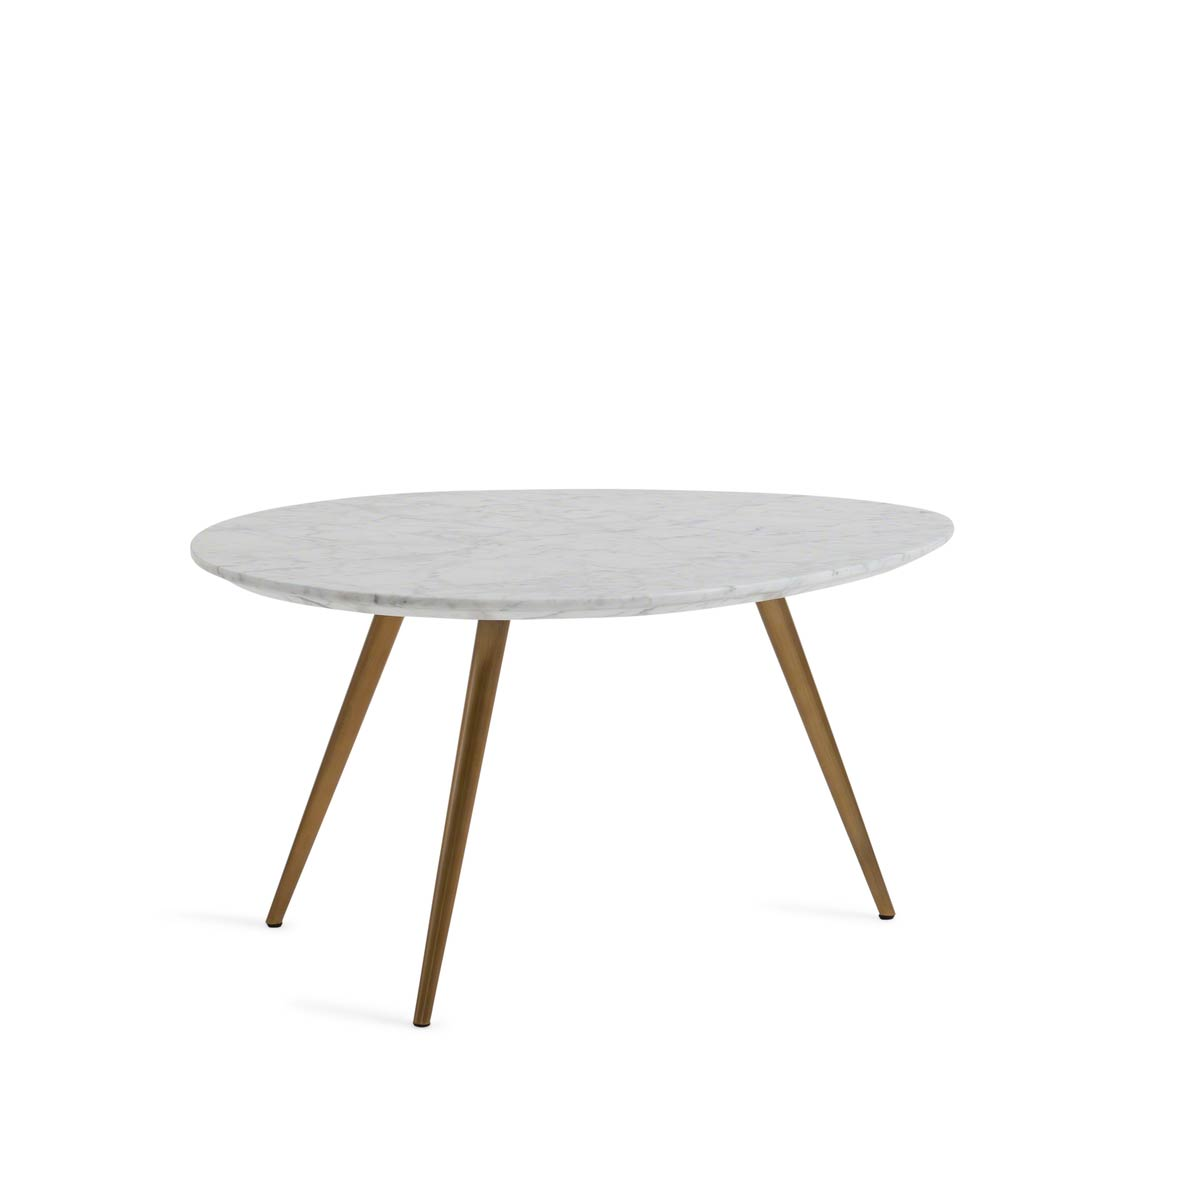 Lily Pad Nesting Tables West Elm Work